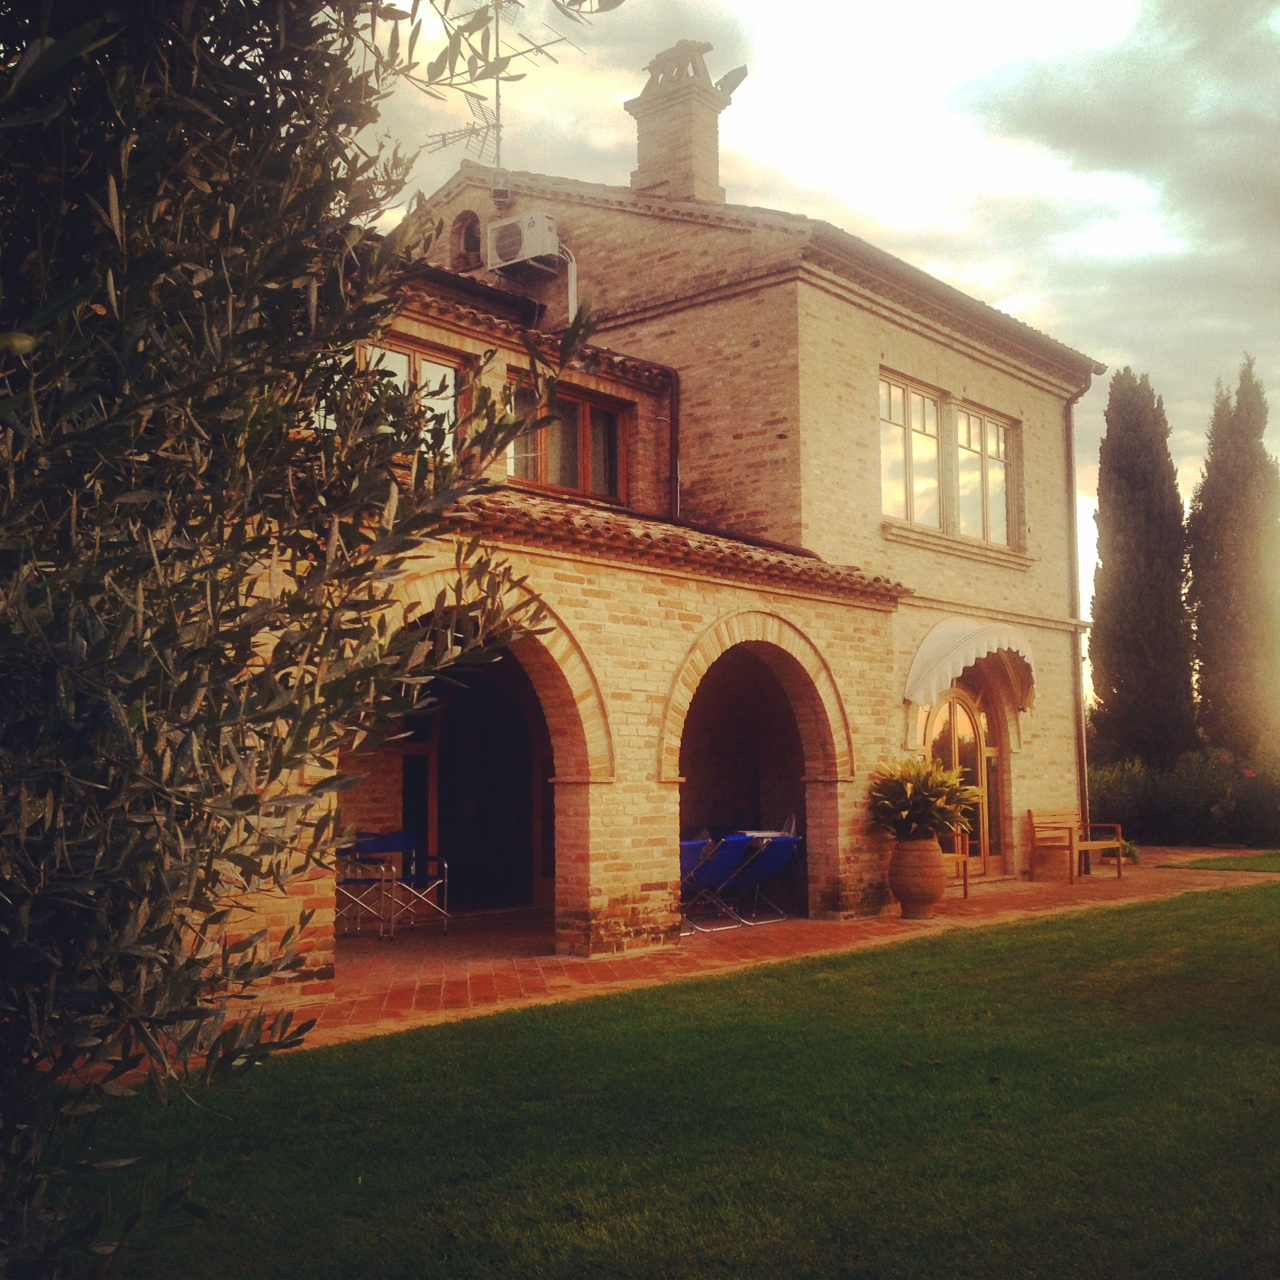 Holiday Guide where to go in Italy in the Marche Region